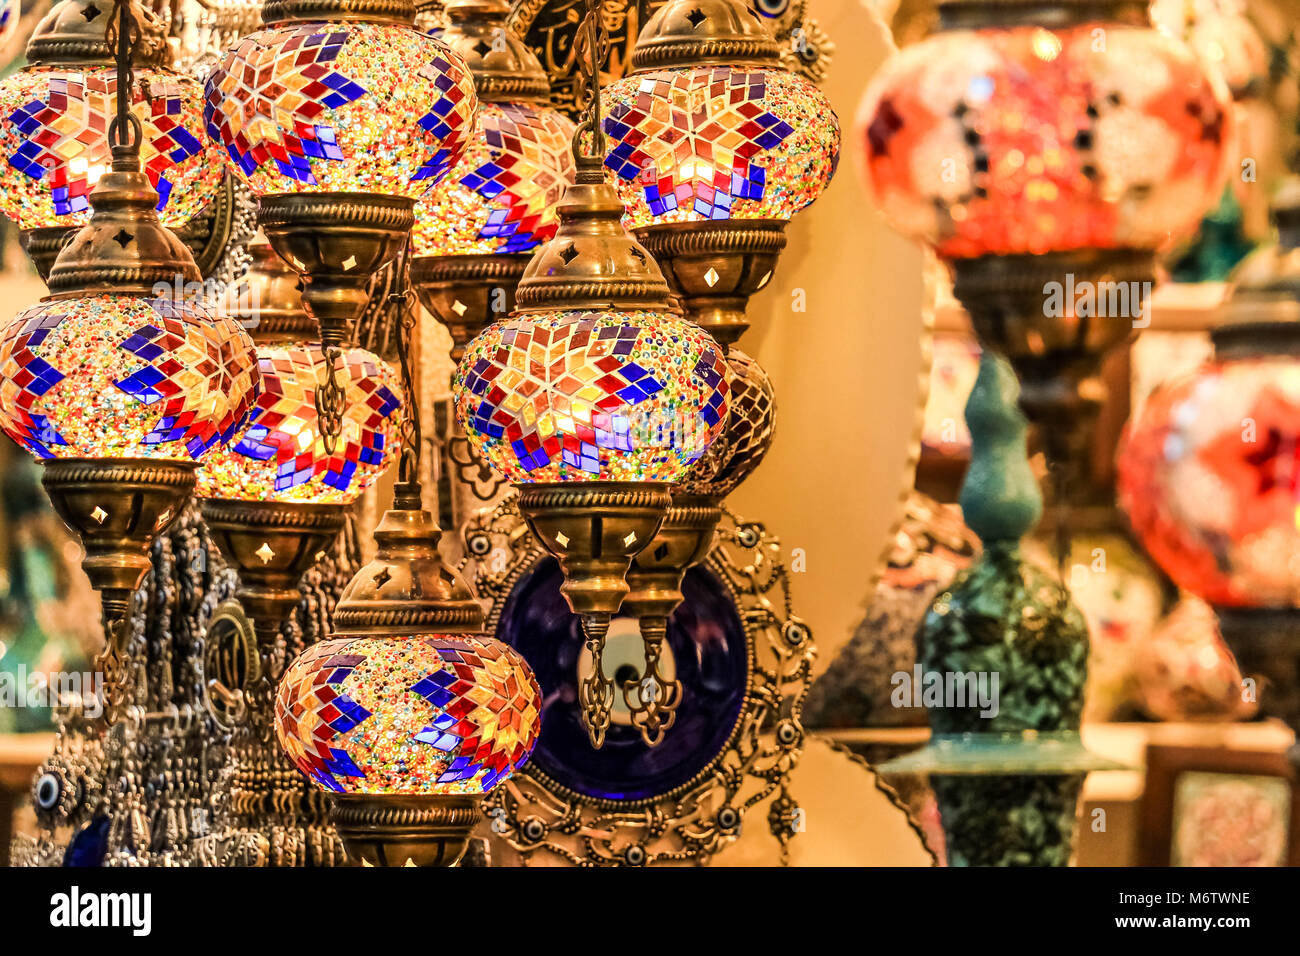 Traditional Bright Decorative Hanging Turkish Lamps And Colourful Stock Photo Alamy